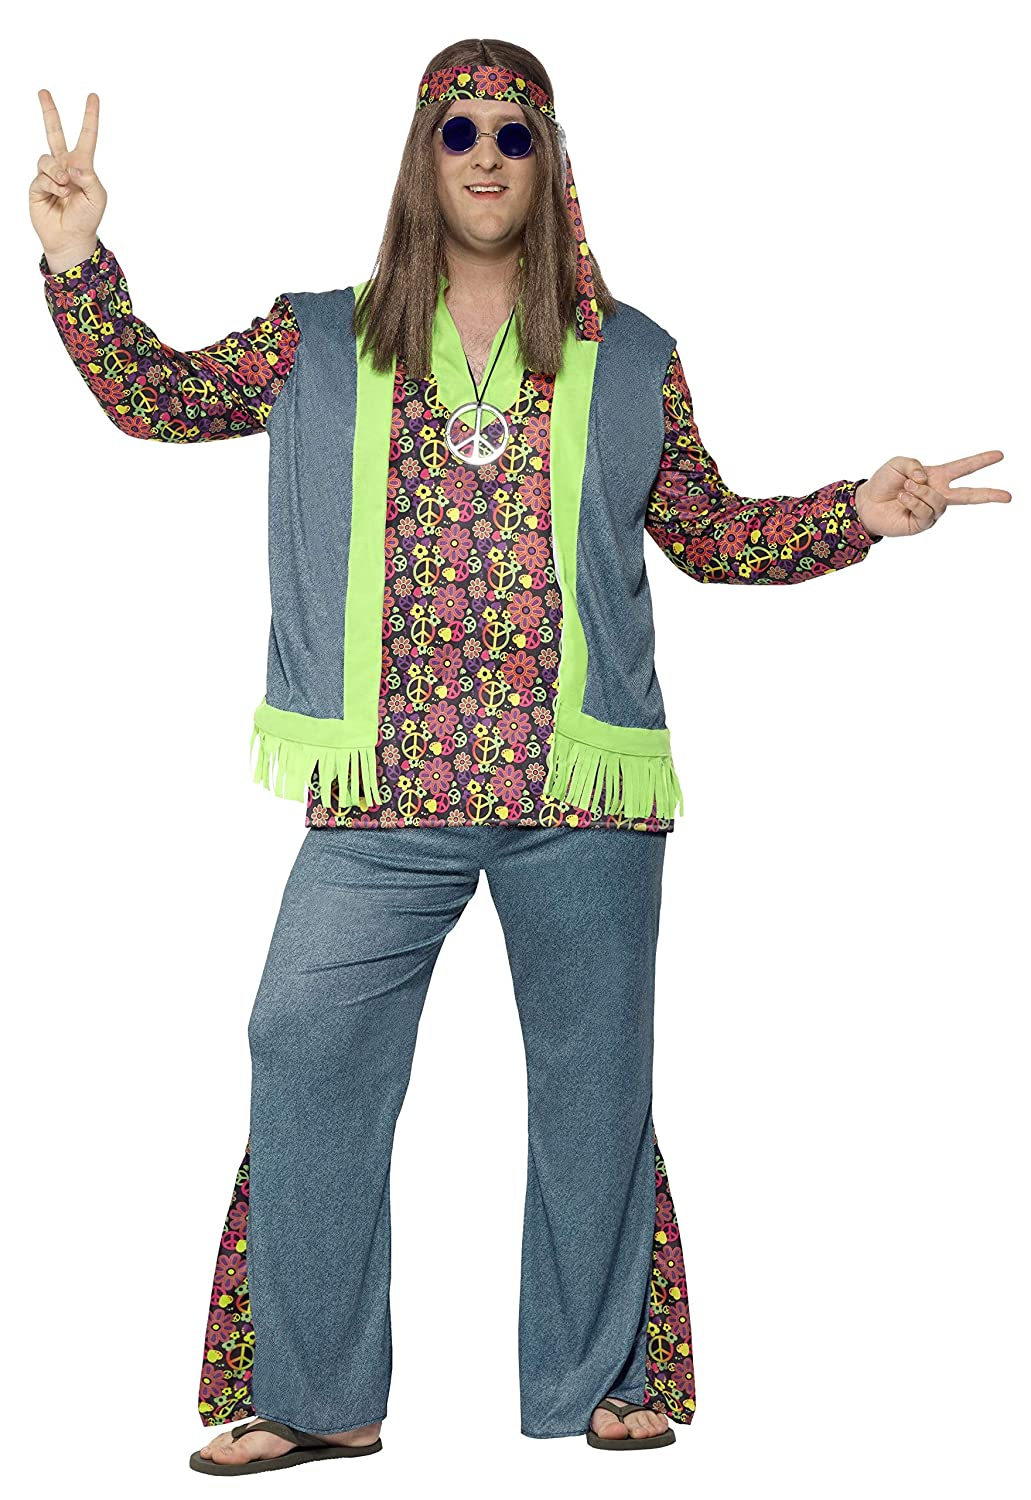 70s Costumes: Disco Costumes, Hippie Outfits Smiffys Plus Size Hippie Costume $55.23 AT vintagedancer.com